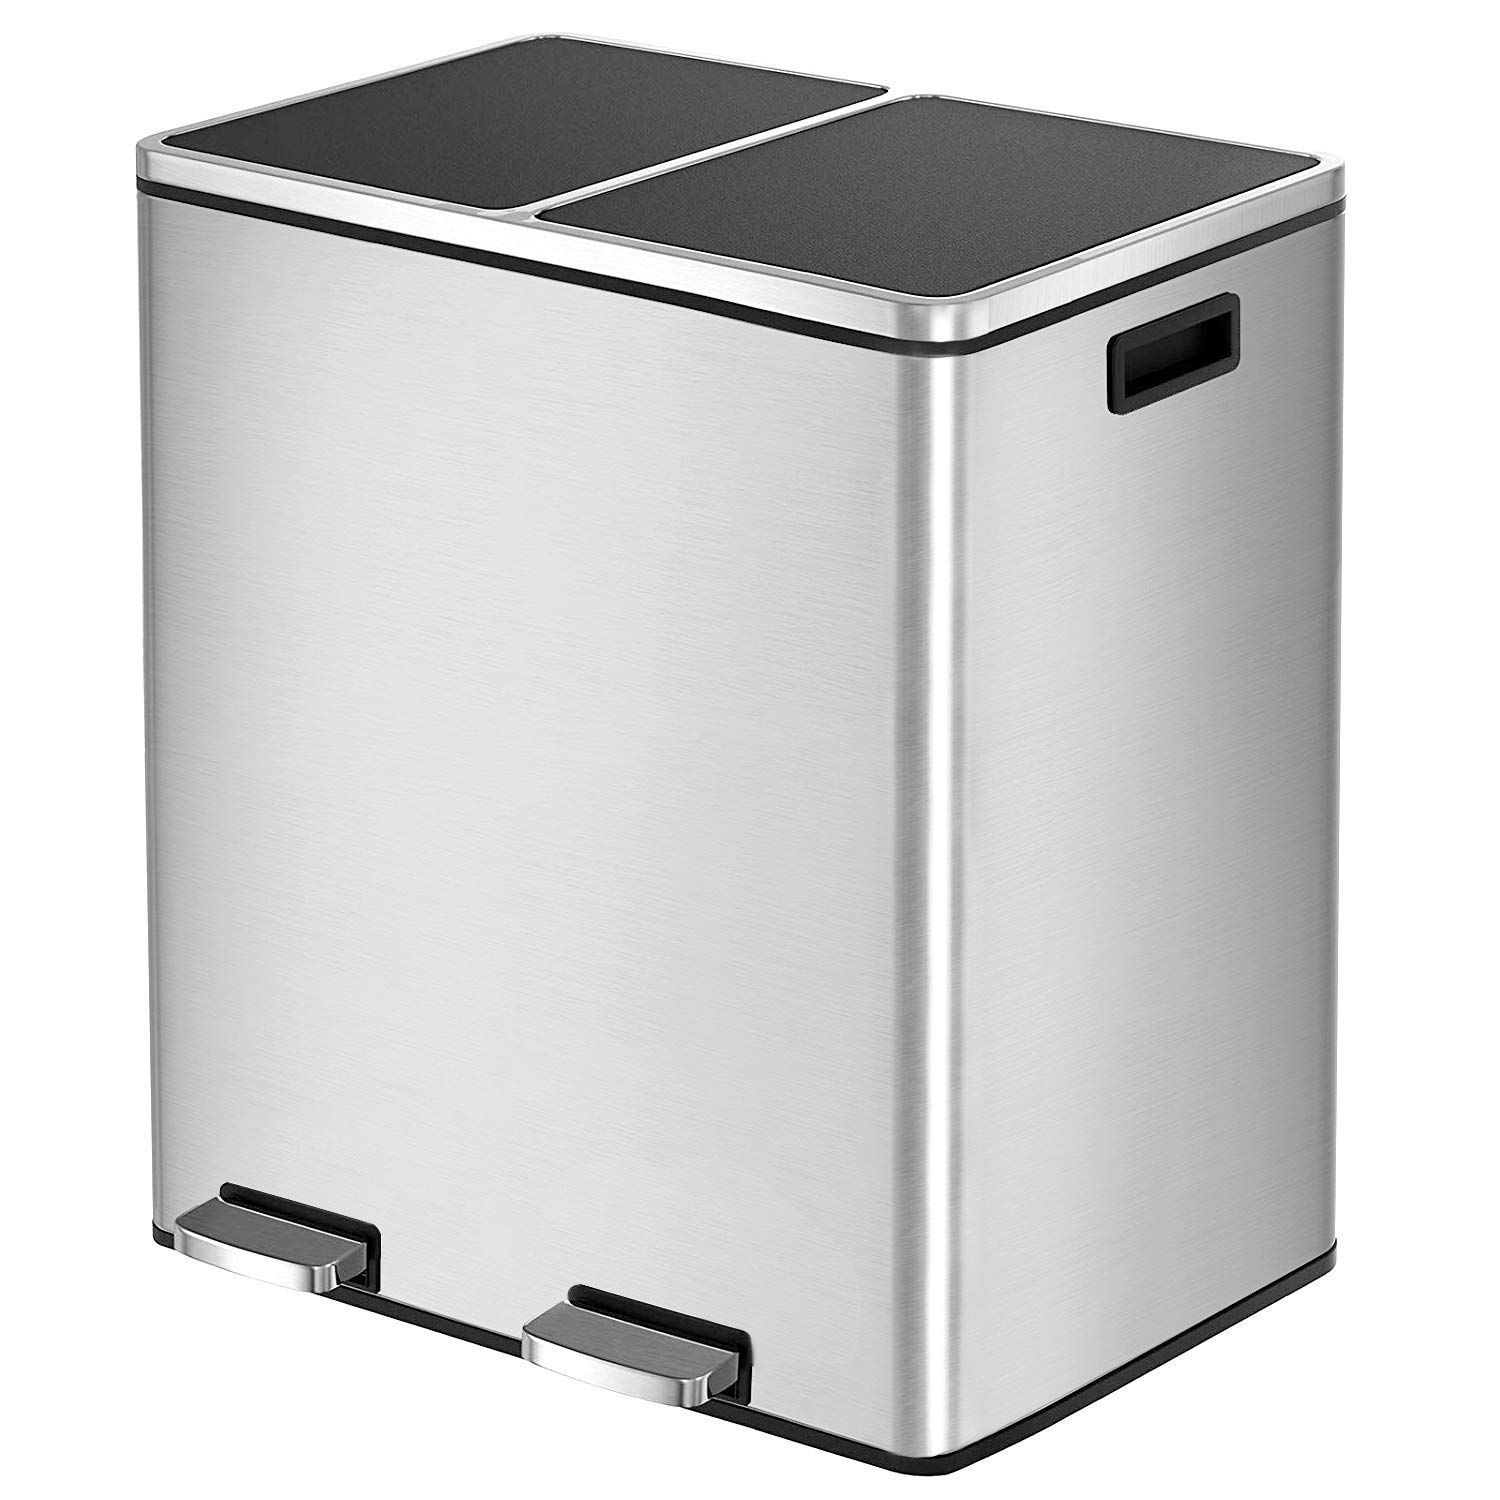 Hembor Dual Trash Can Trash Can Kitchen Office Garbage Can